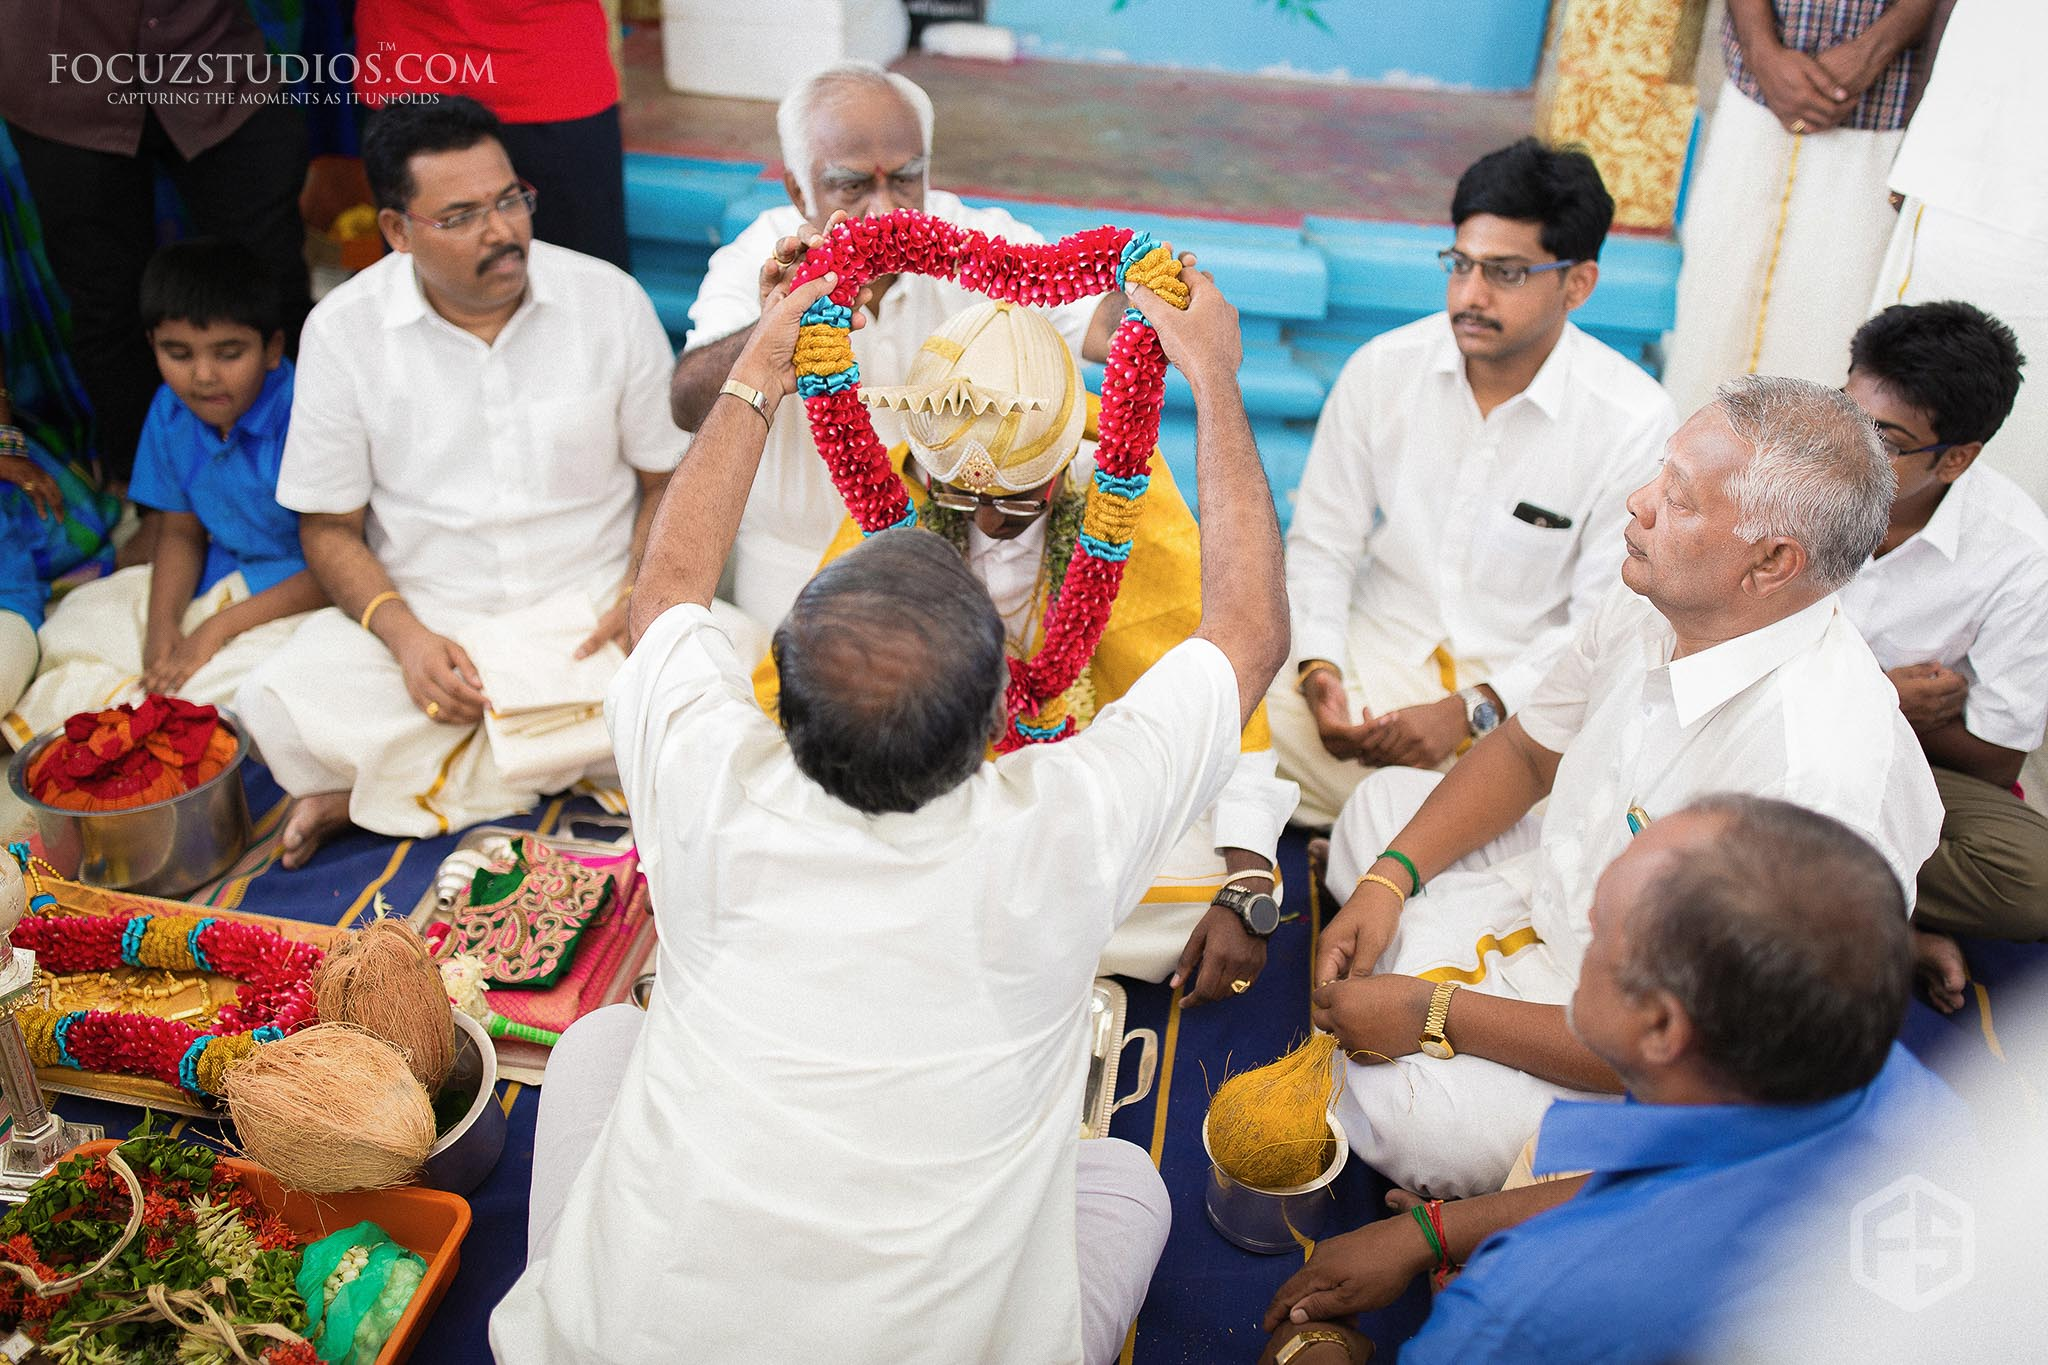 Candid-Chettinad-Wedding-photography-Devakottai-Karaikudi27